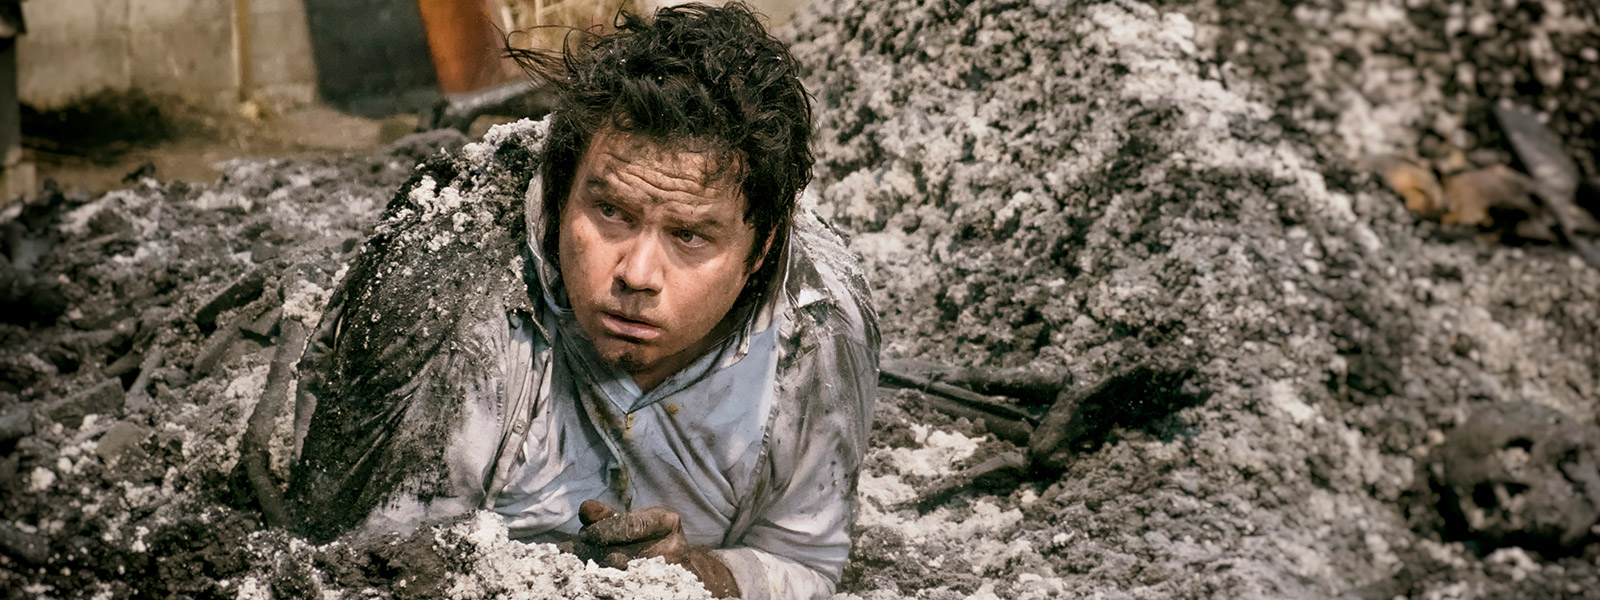 the-walking-dead-episode-815-eugene-mcdermitt-post-800×600